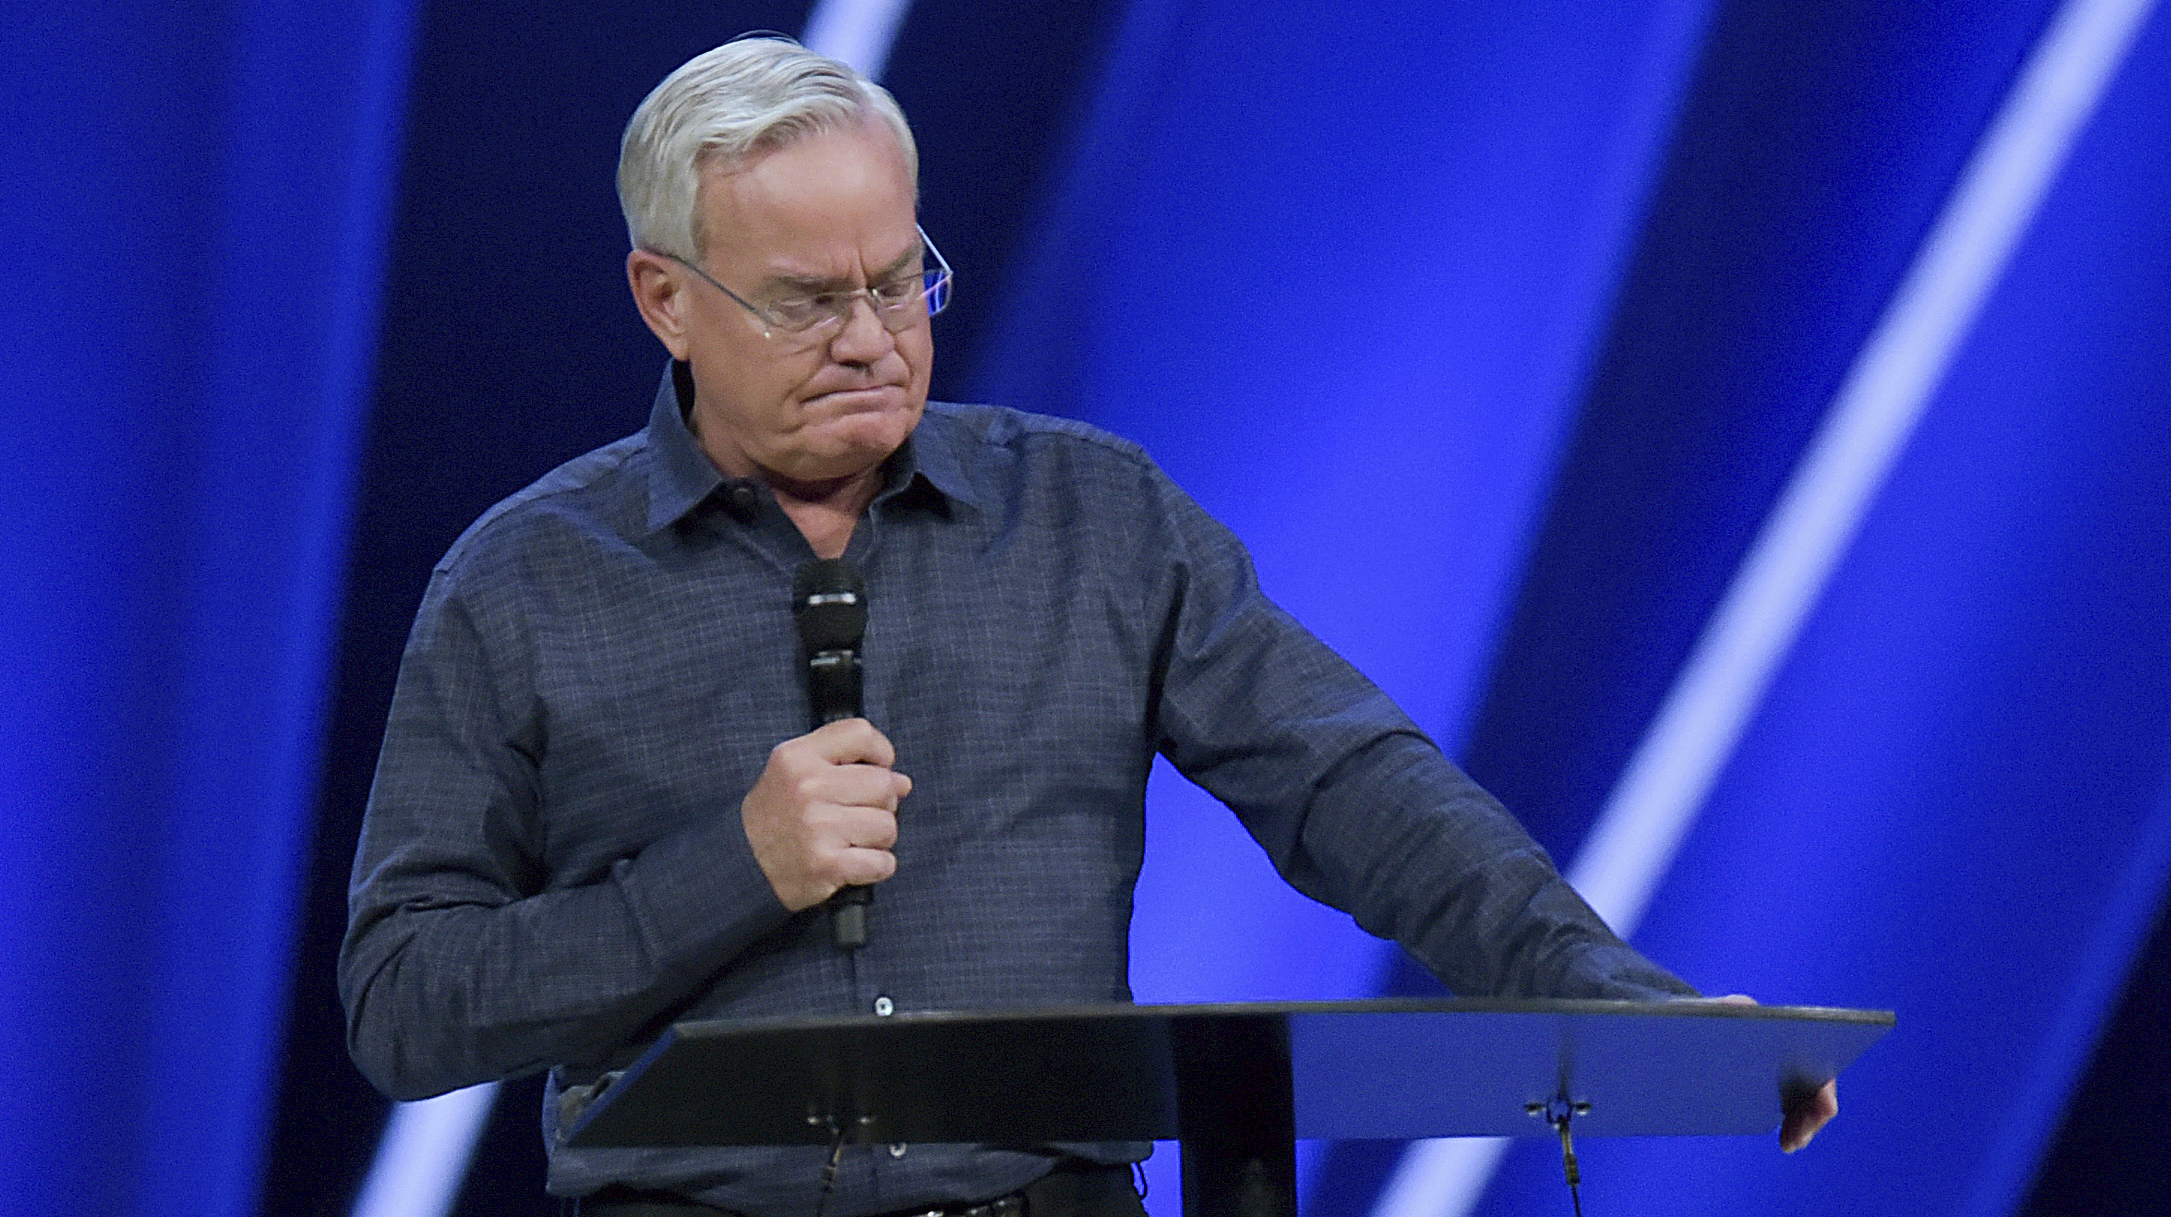 Willow Creek Promises Investigation Amid New Allegations A